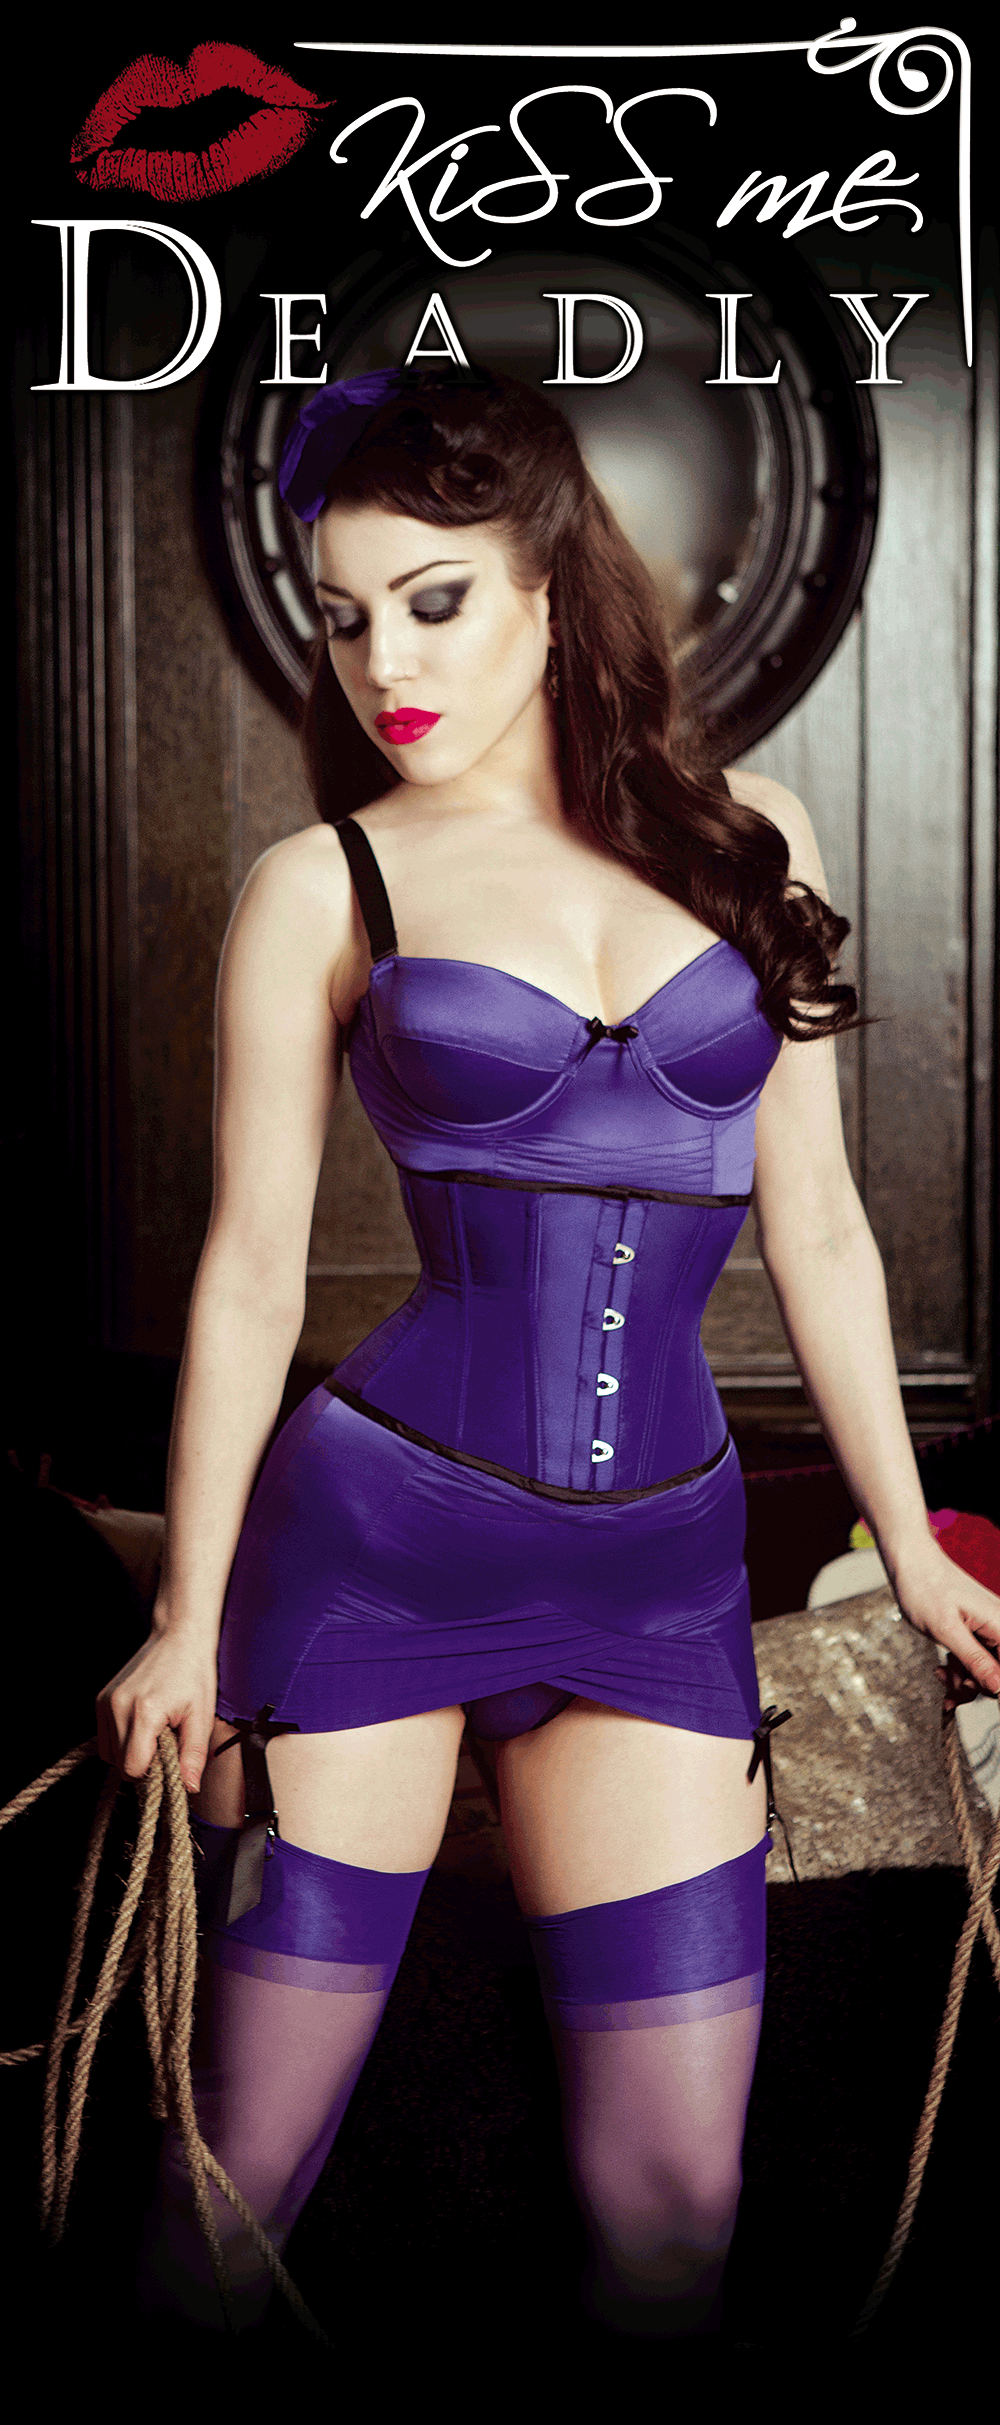 Kiss Me Deadly Lingerie Clearance, starts at $10